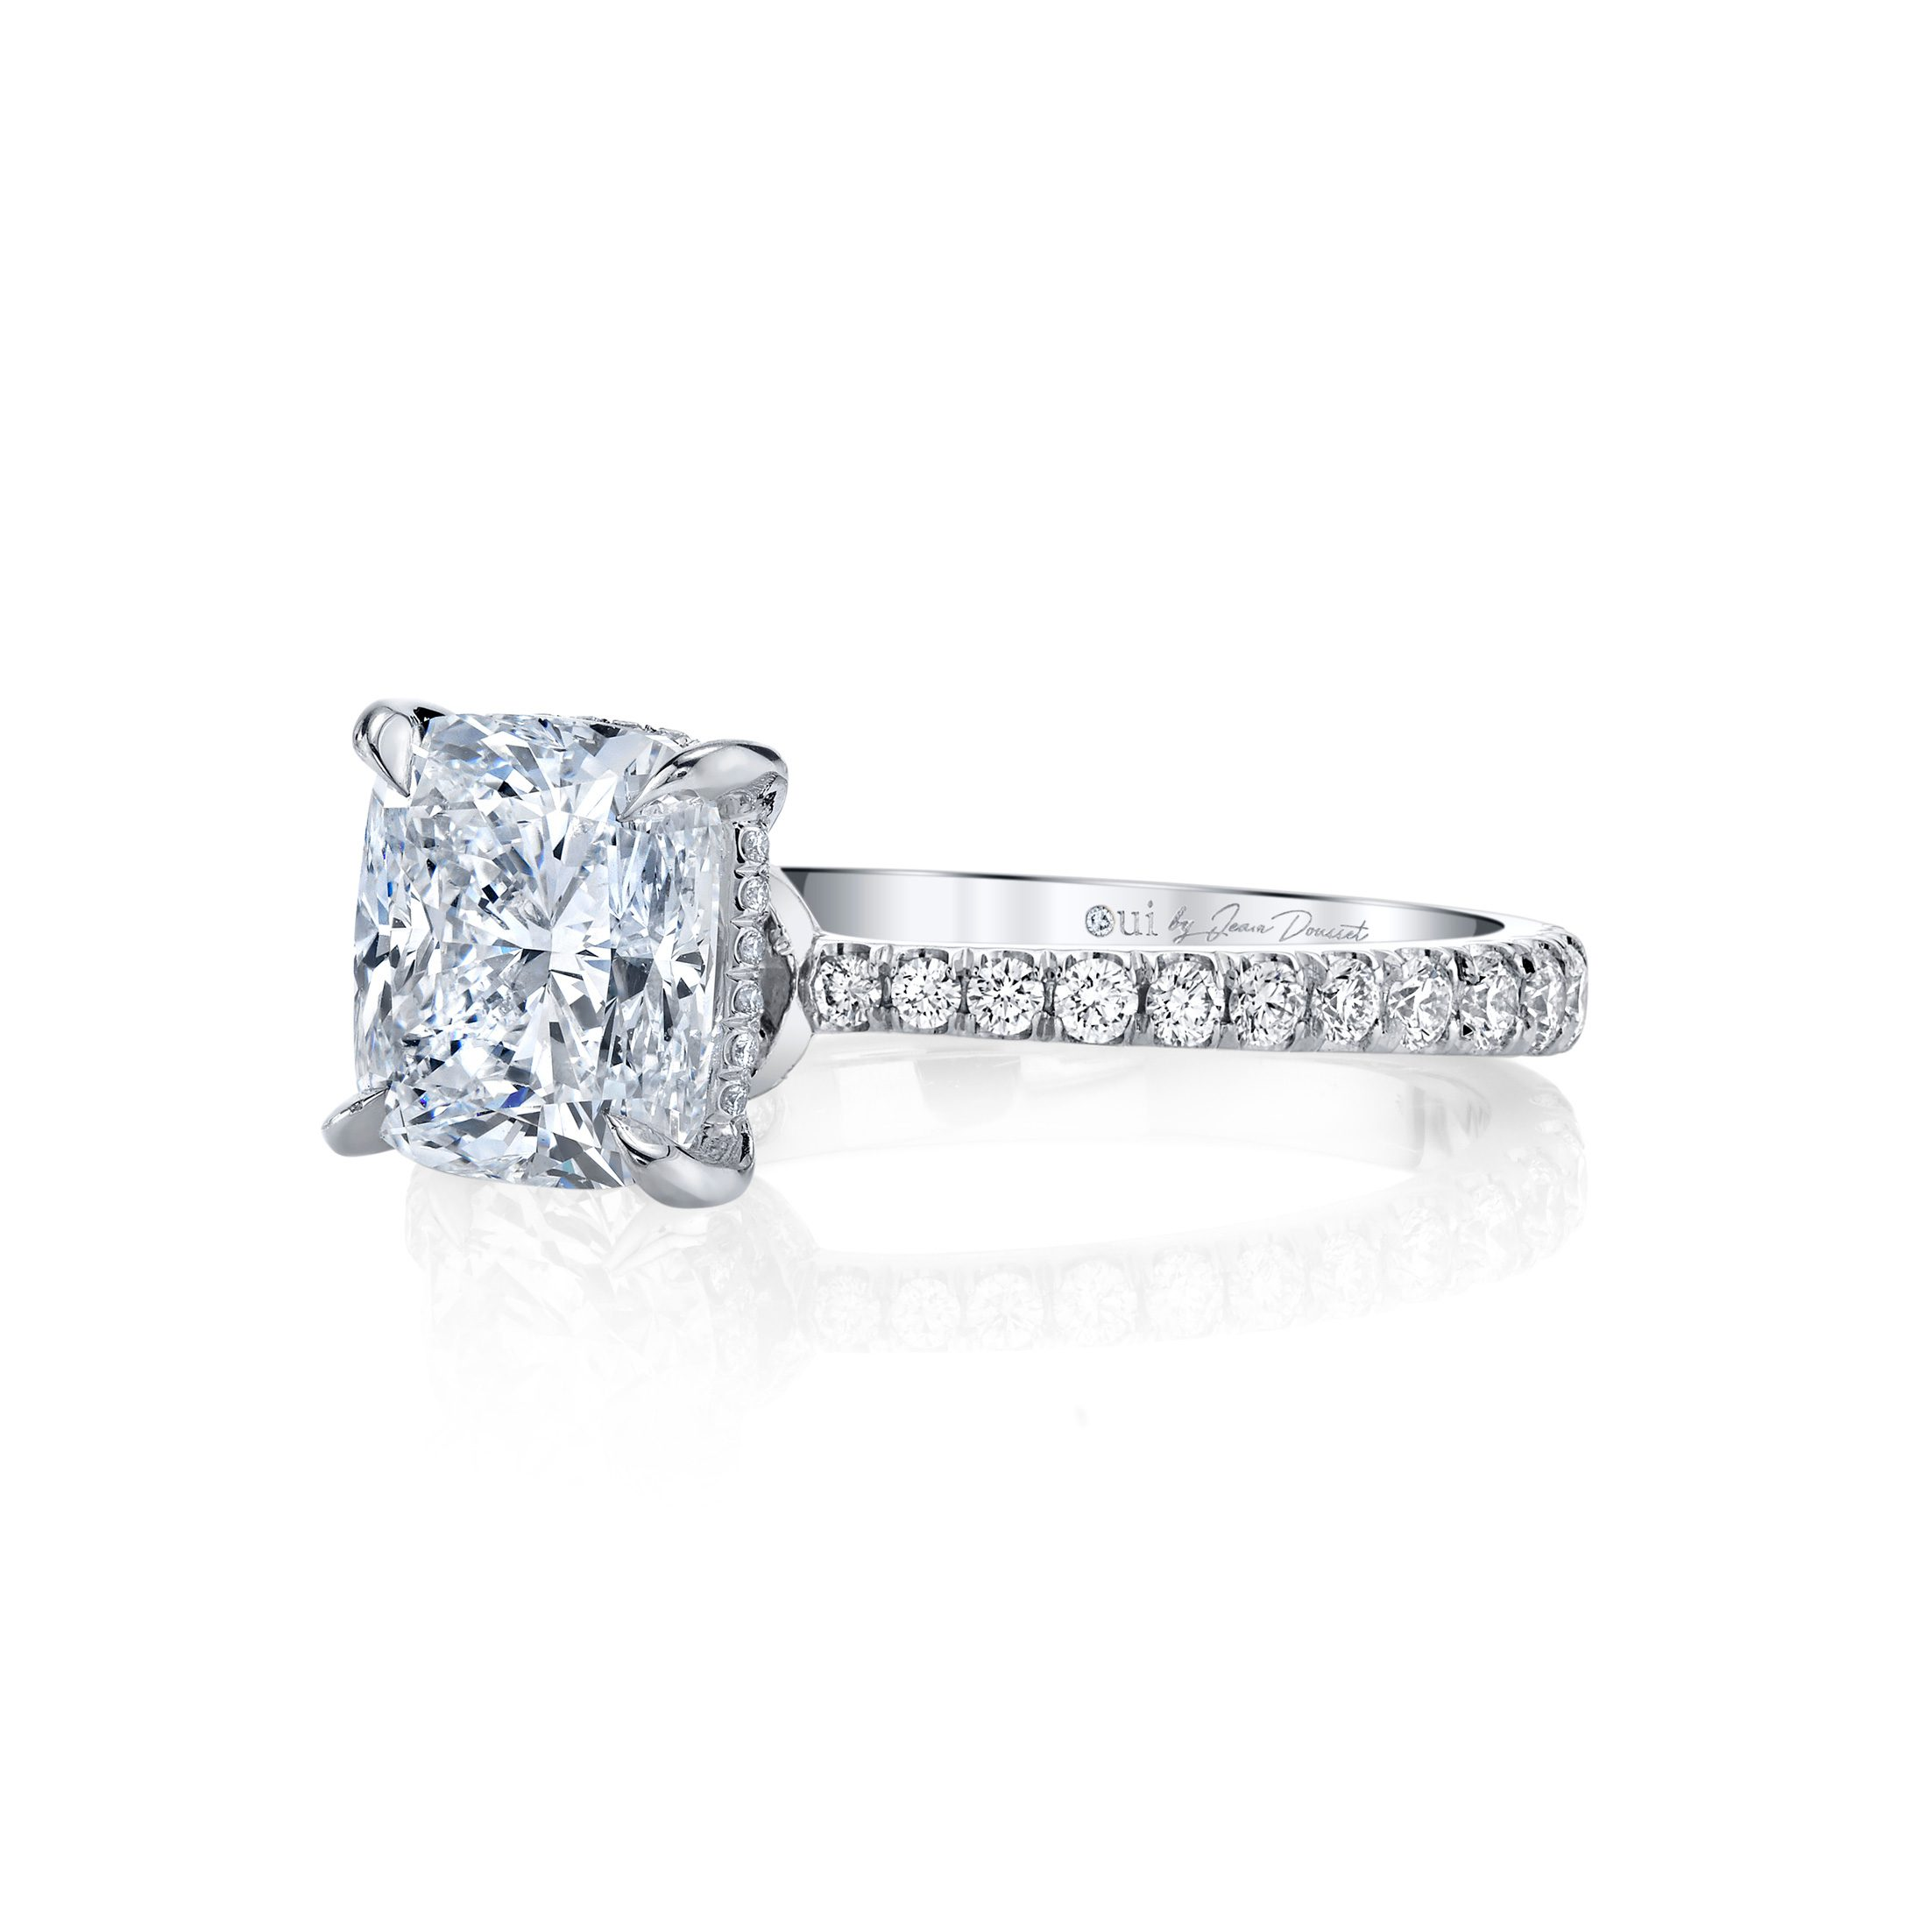 Eloise Cushion Solitaire Engagement Ring with a diamond pavé band in 18k White Gold Side View by Oui by Jean Dousset